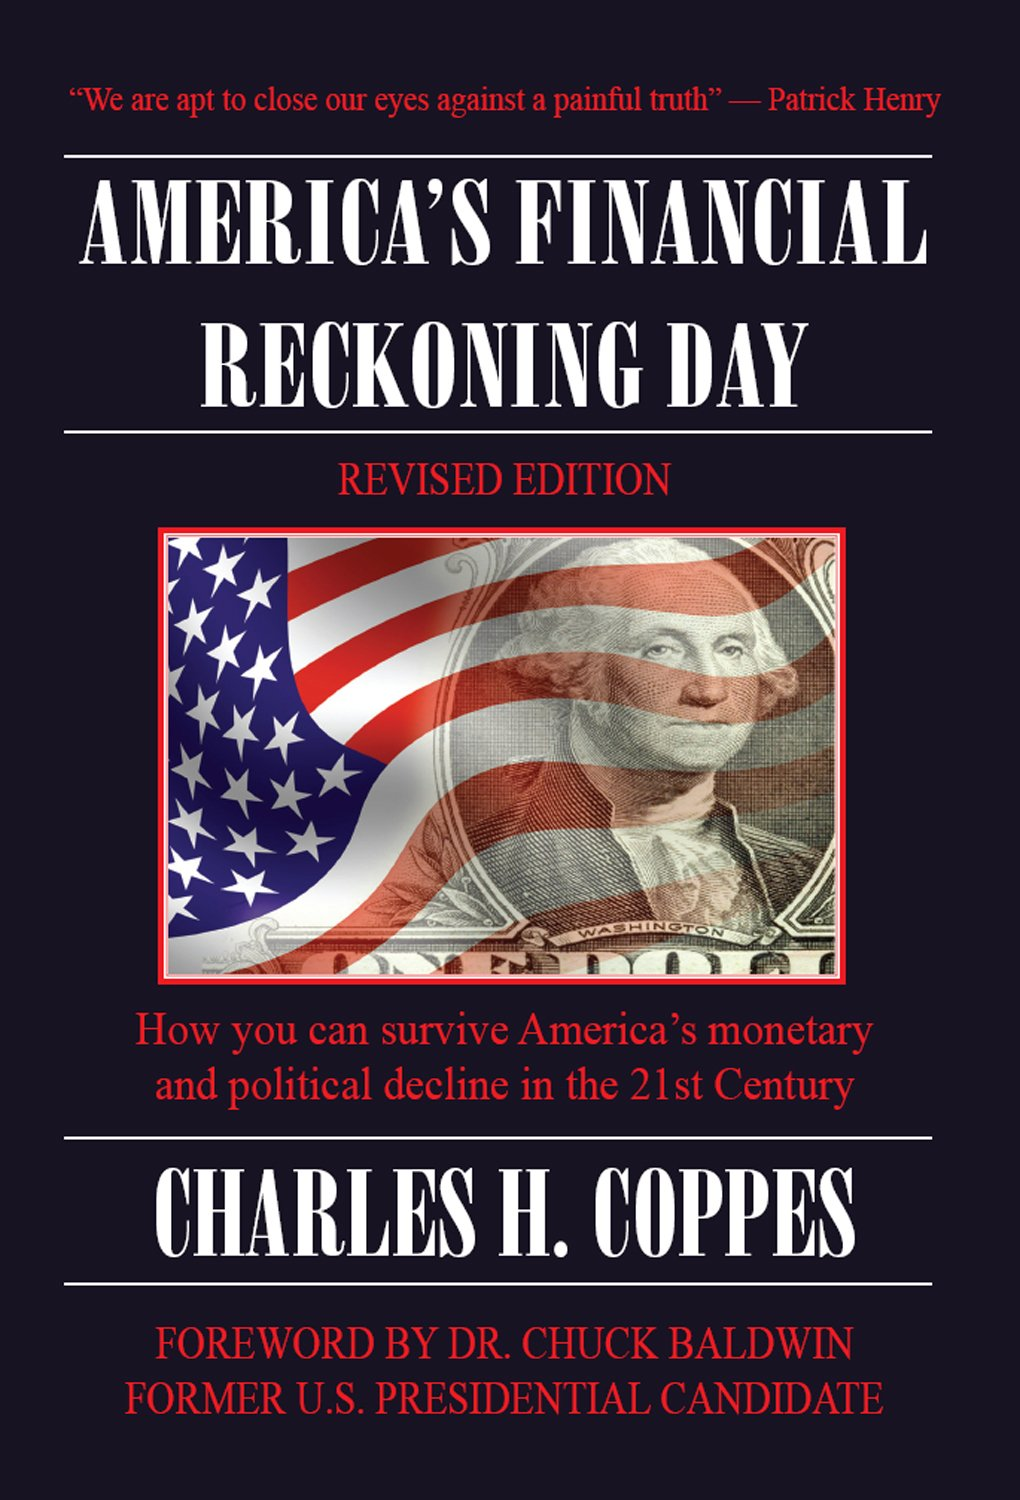 America's Financial Reckoning Day: How you can survive America's monetary and political decline in the 21st Century